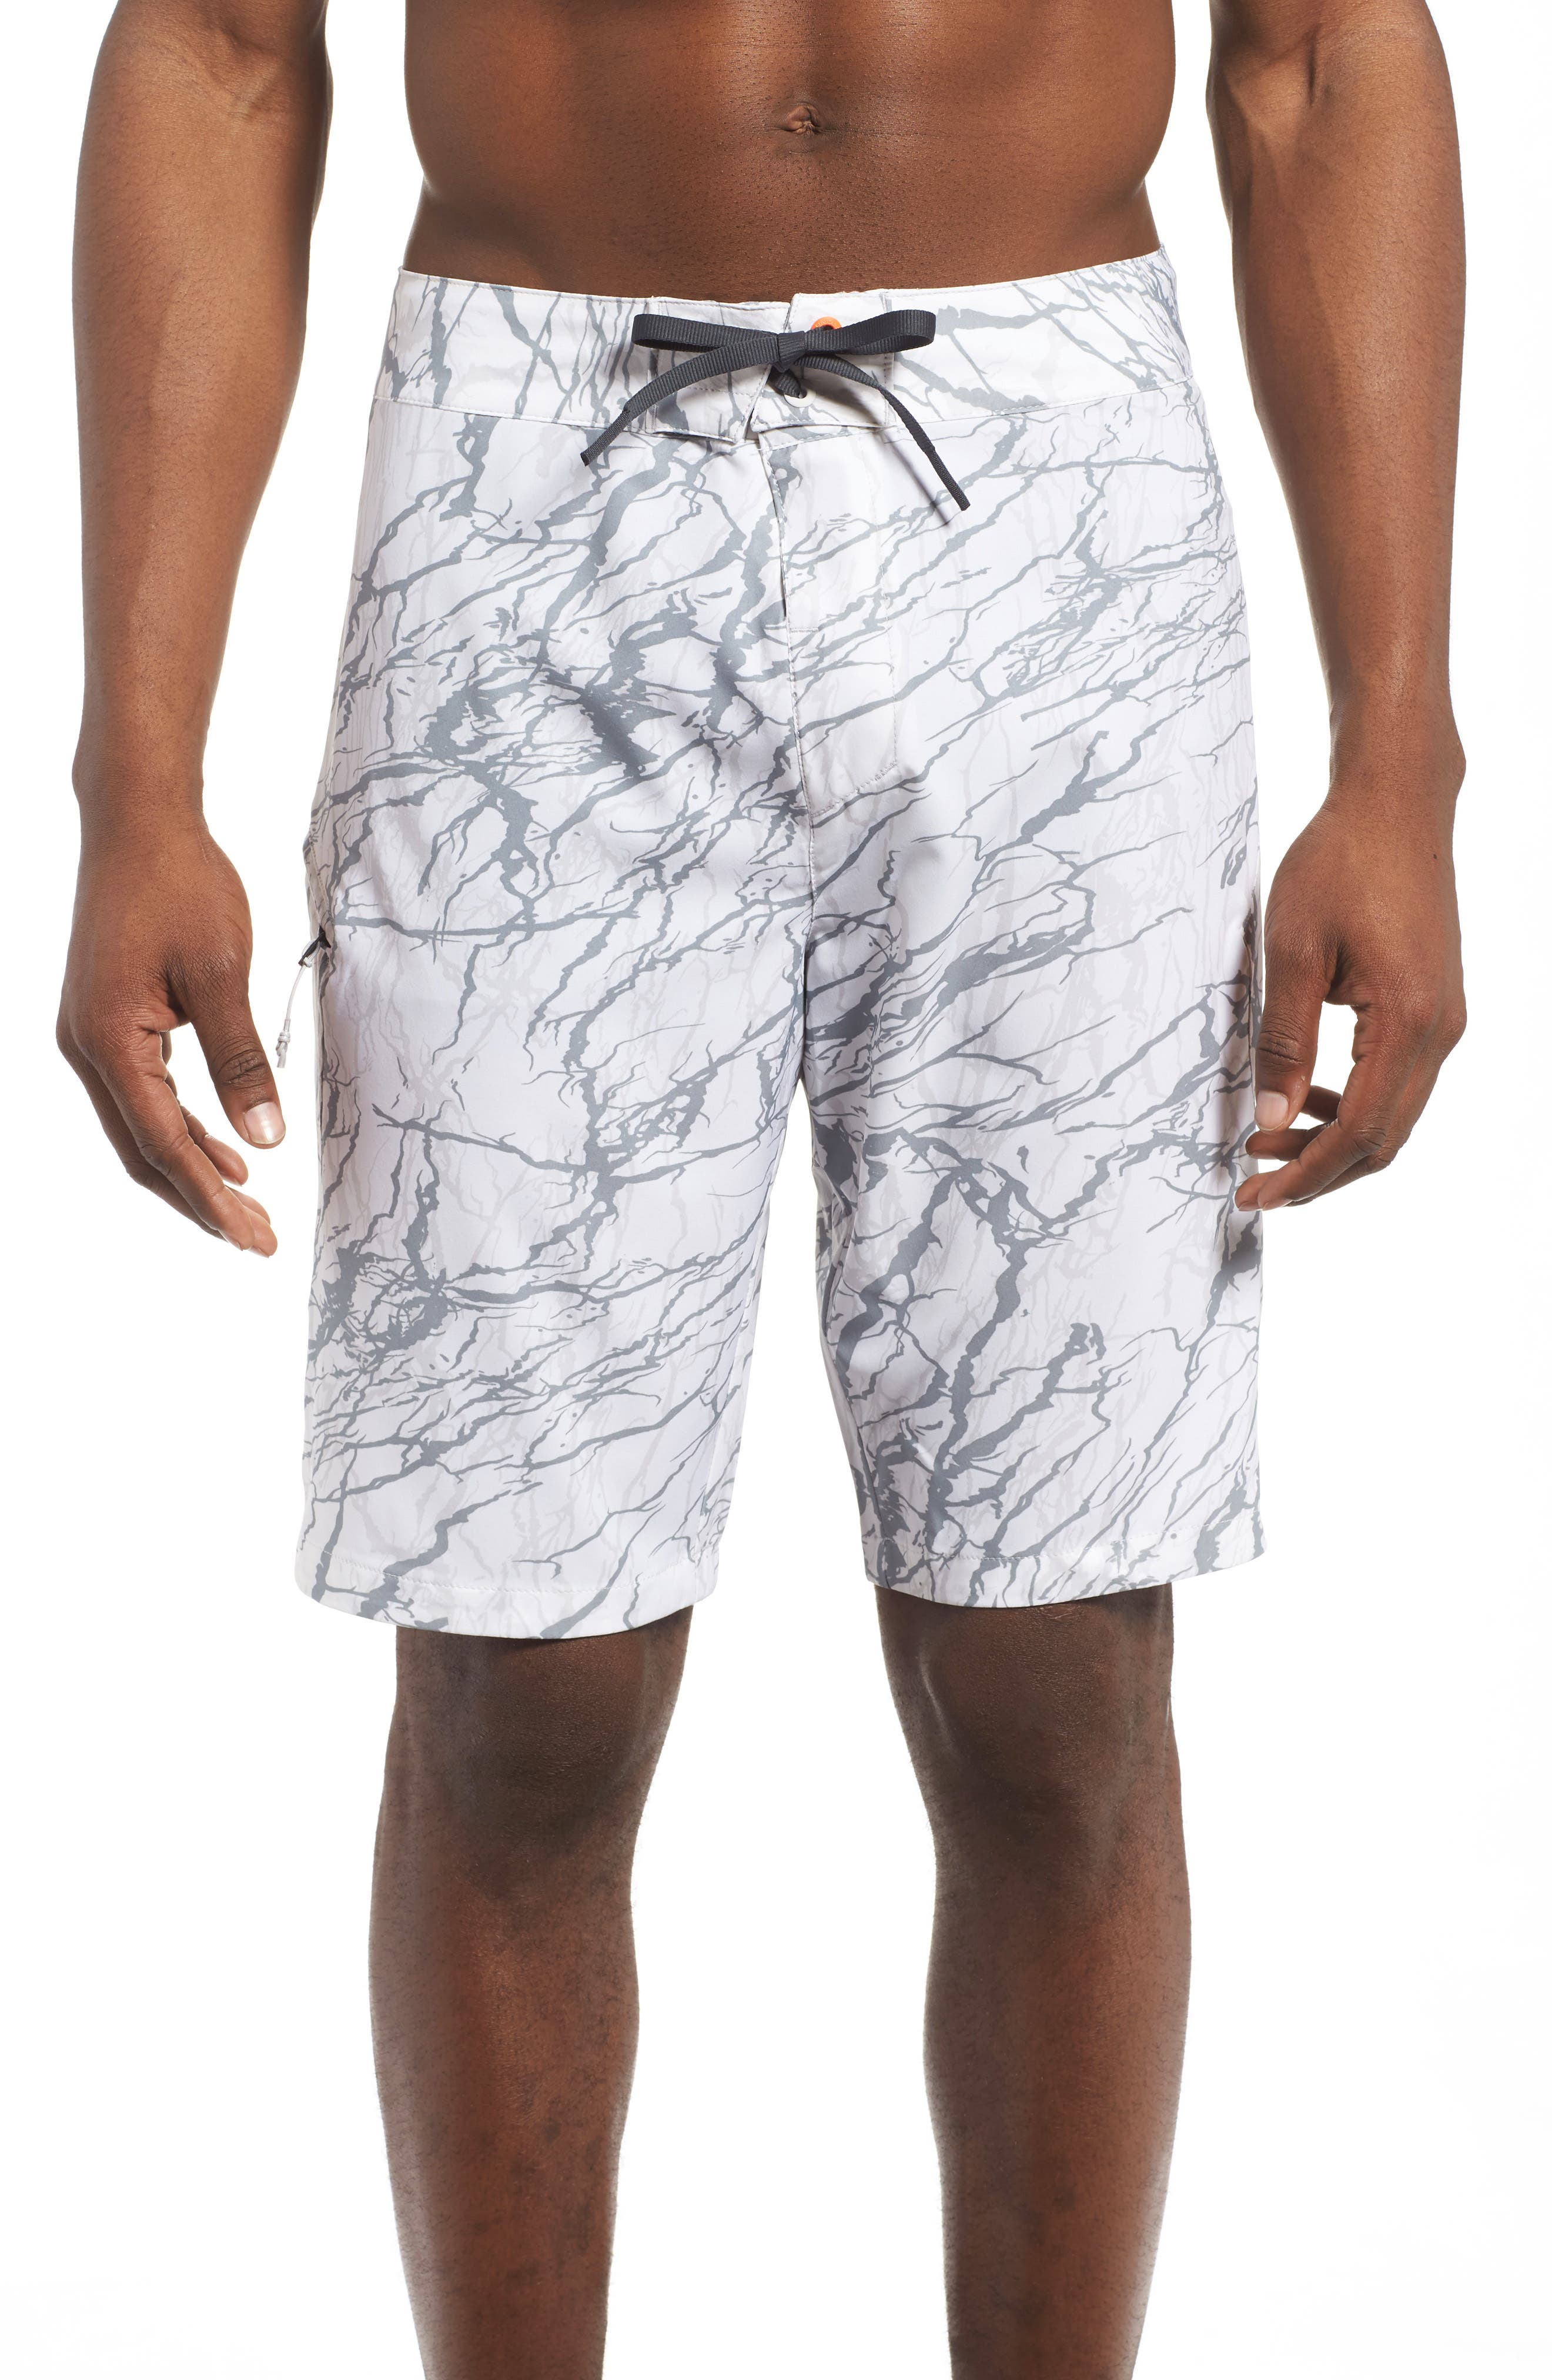 Under Armour Print Board Shorts